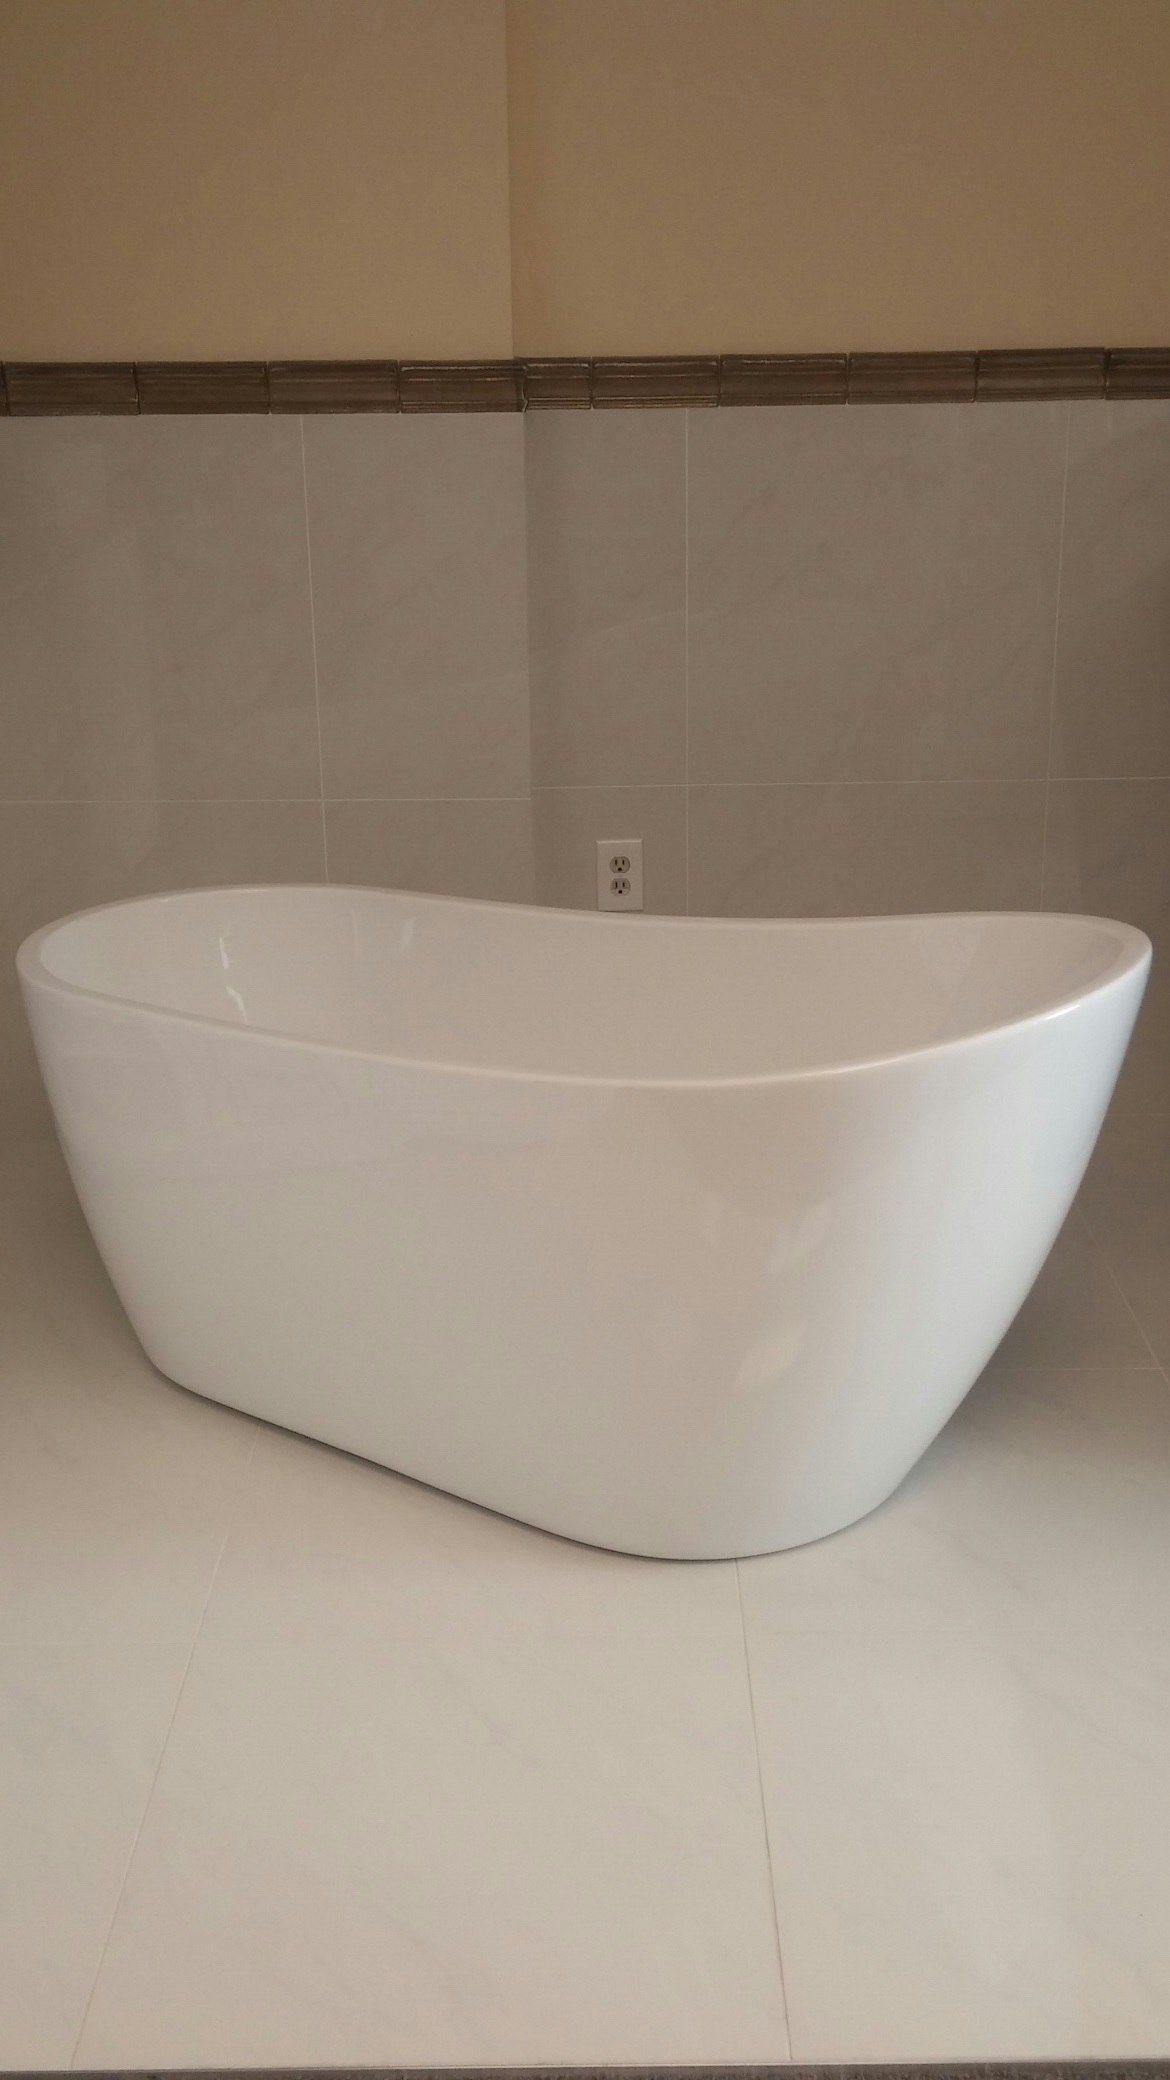 Free standing Barclay bathtub